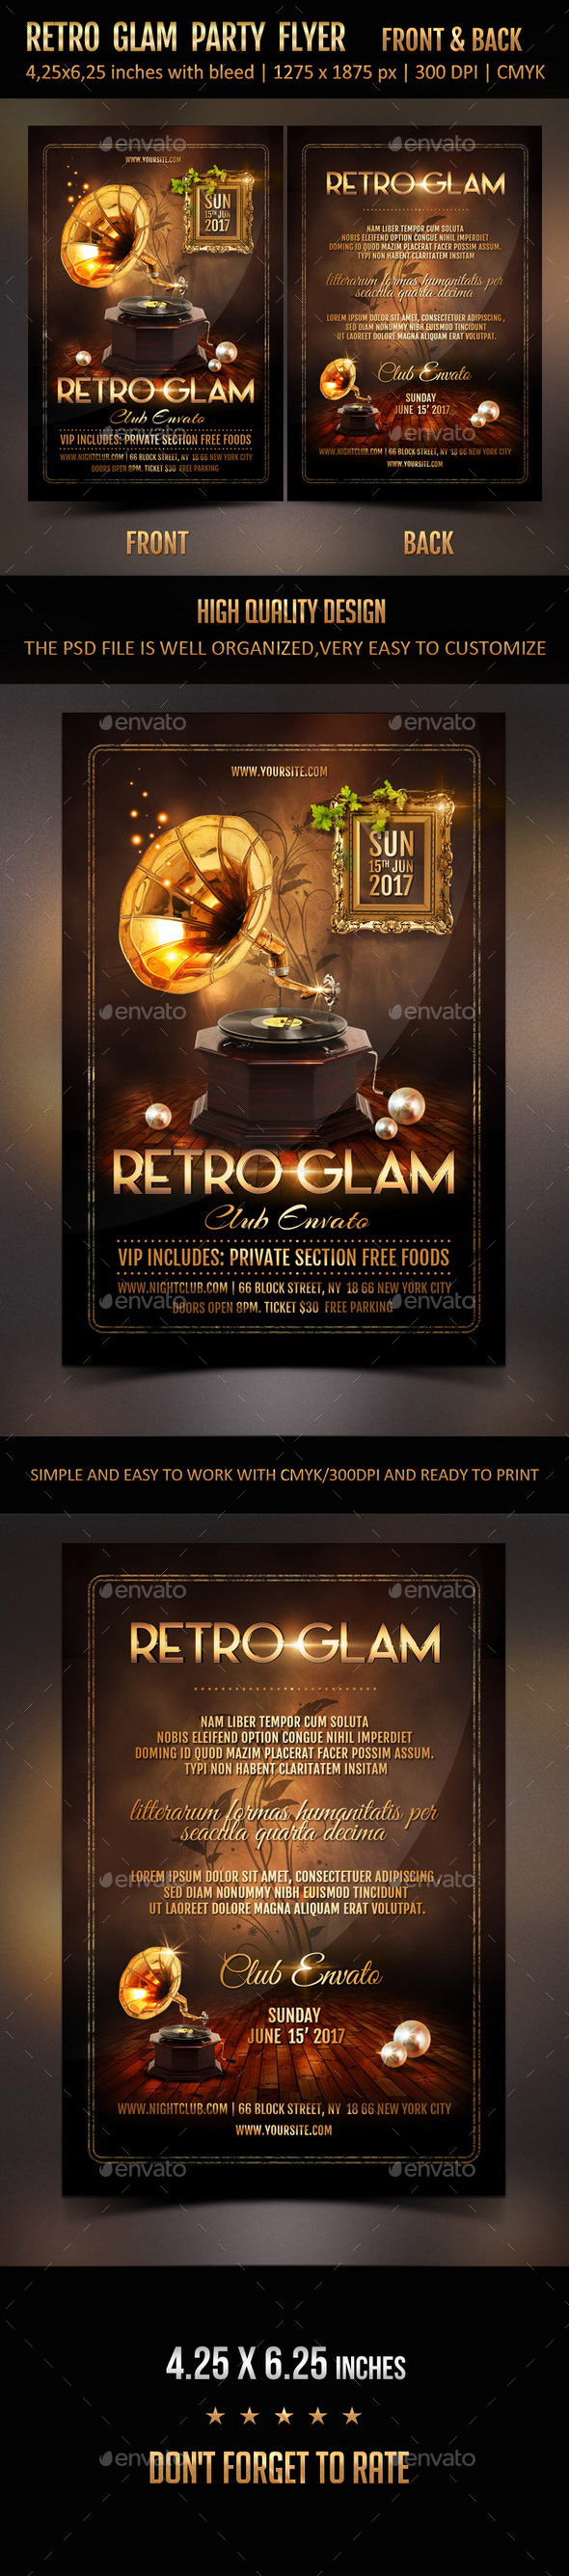 Retro Glam Party Flyer - Clubs & Parties Events